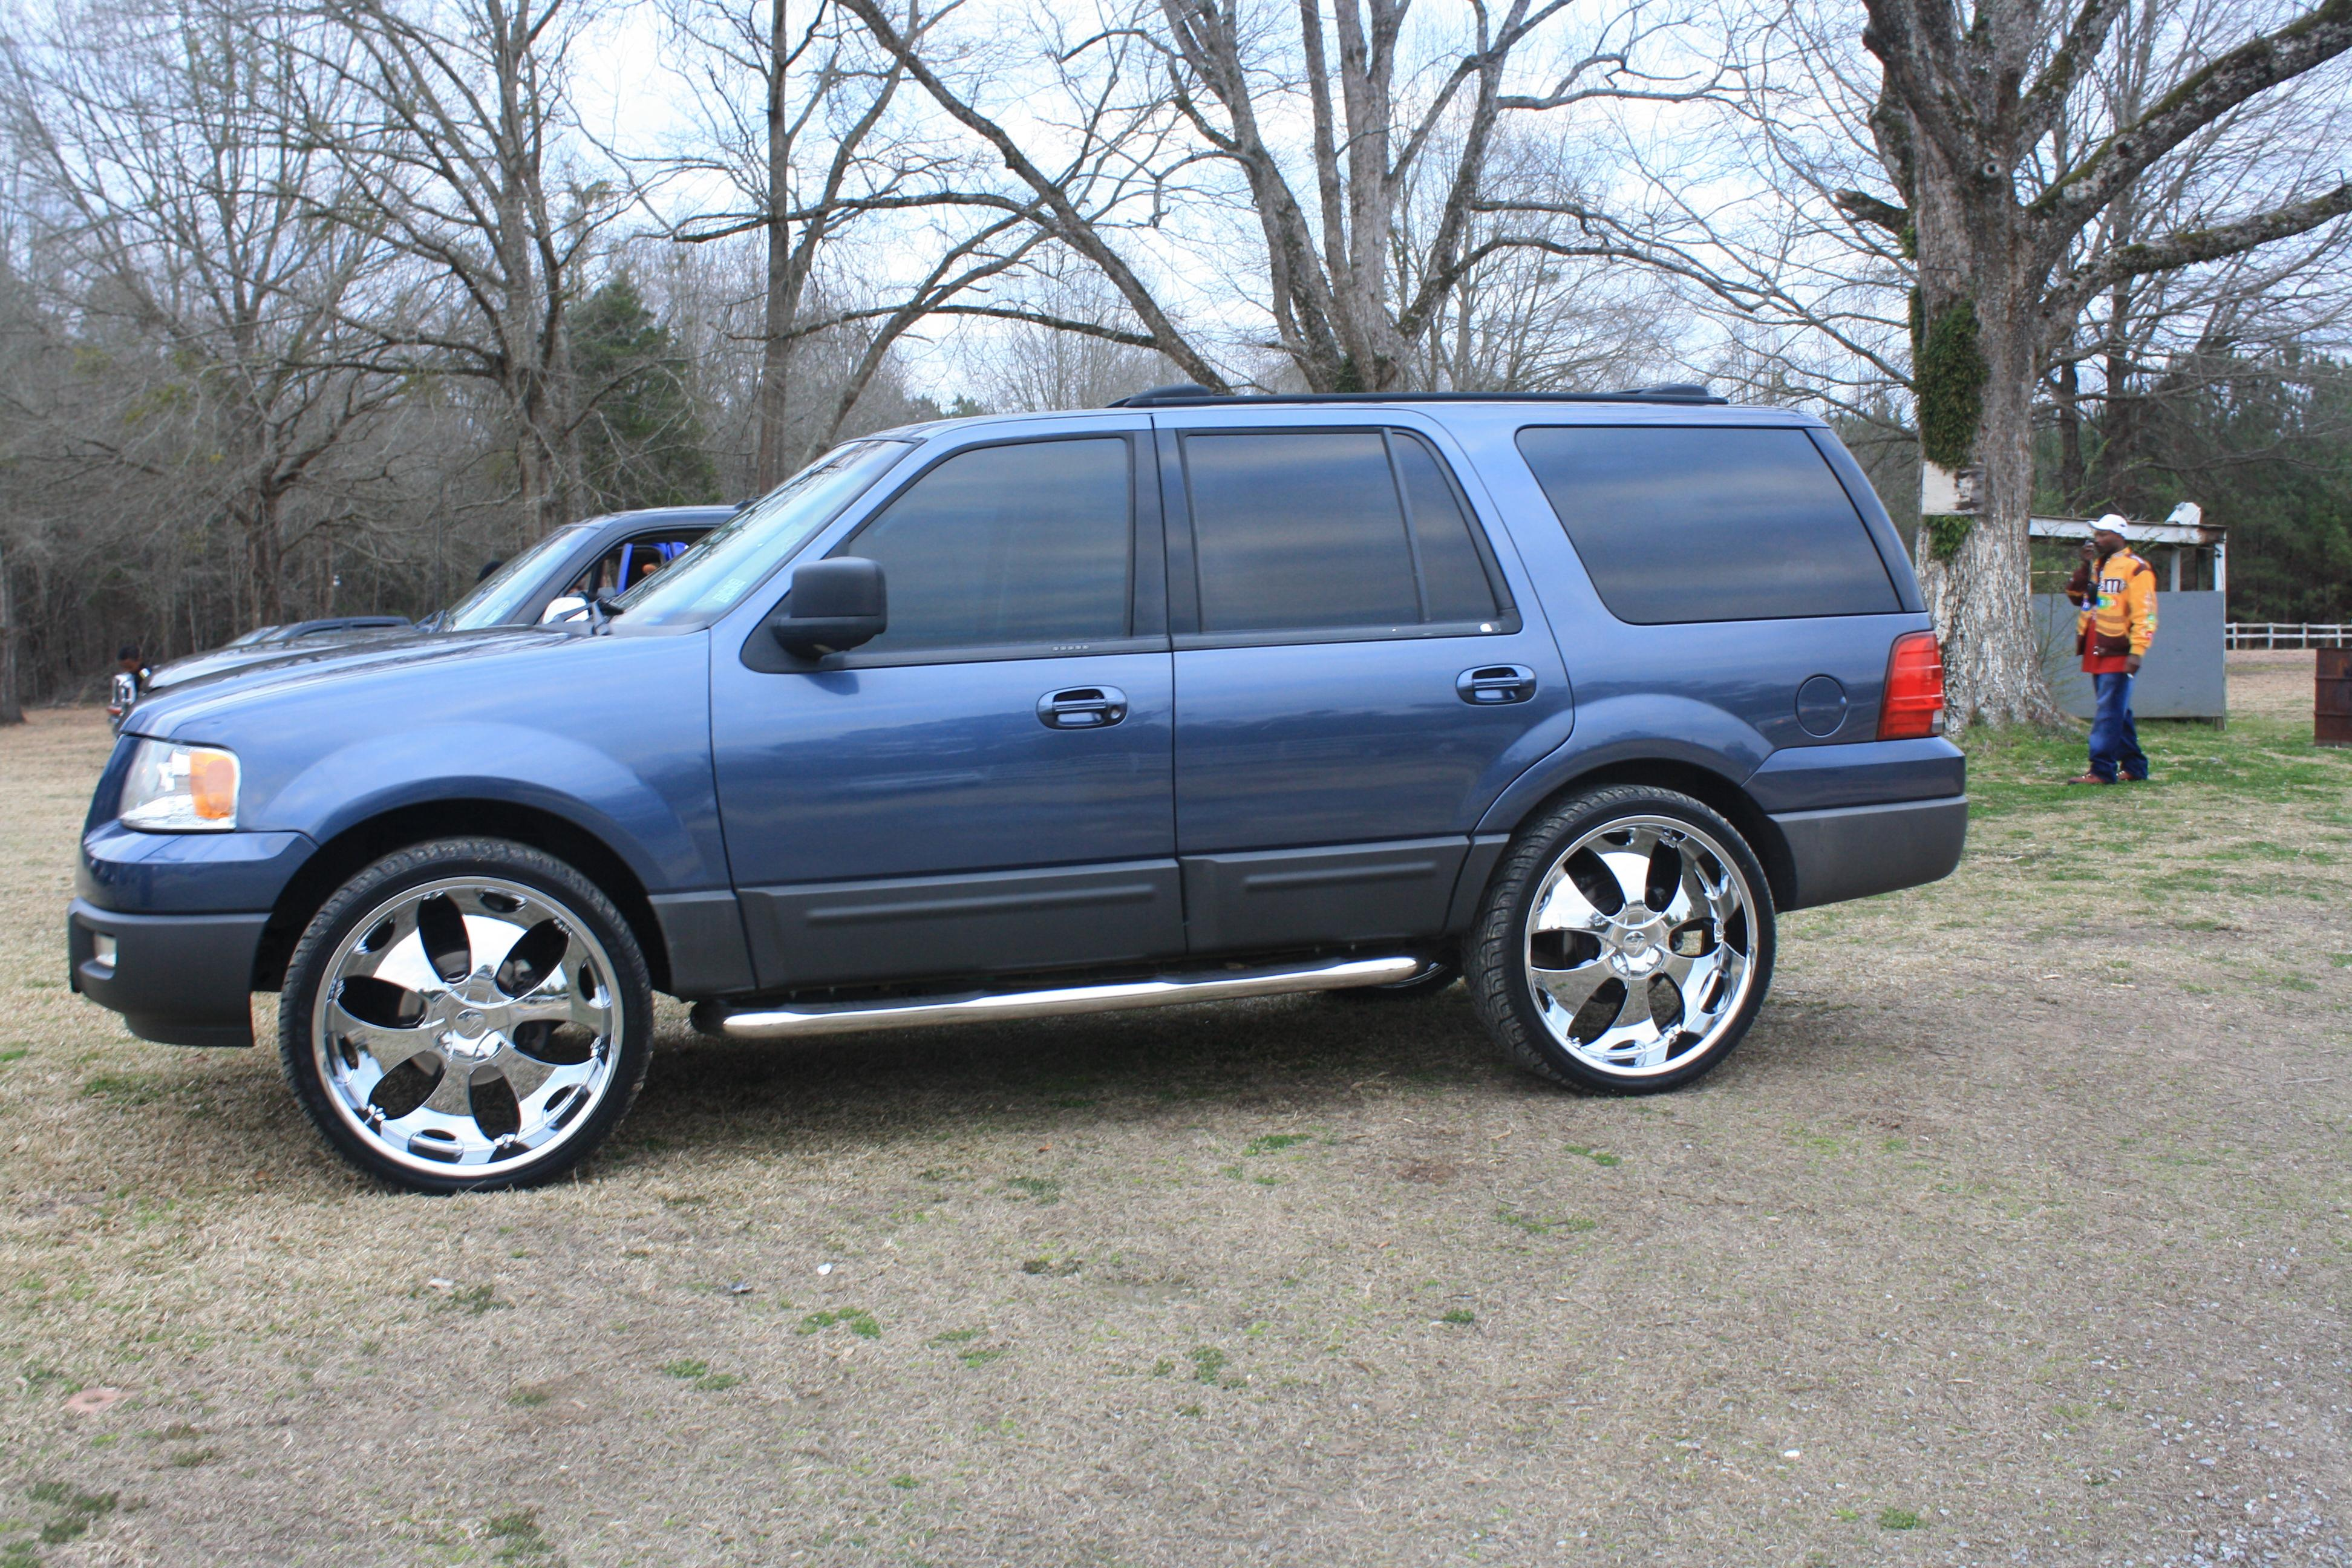 Blue ex on 26's